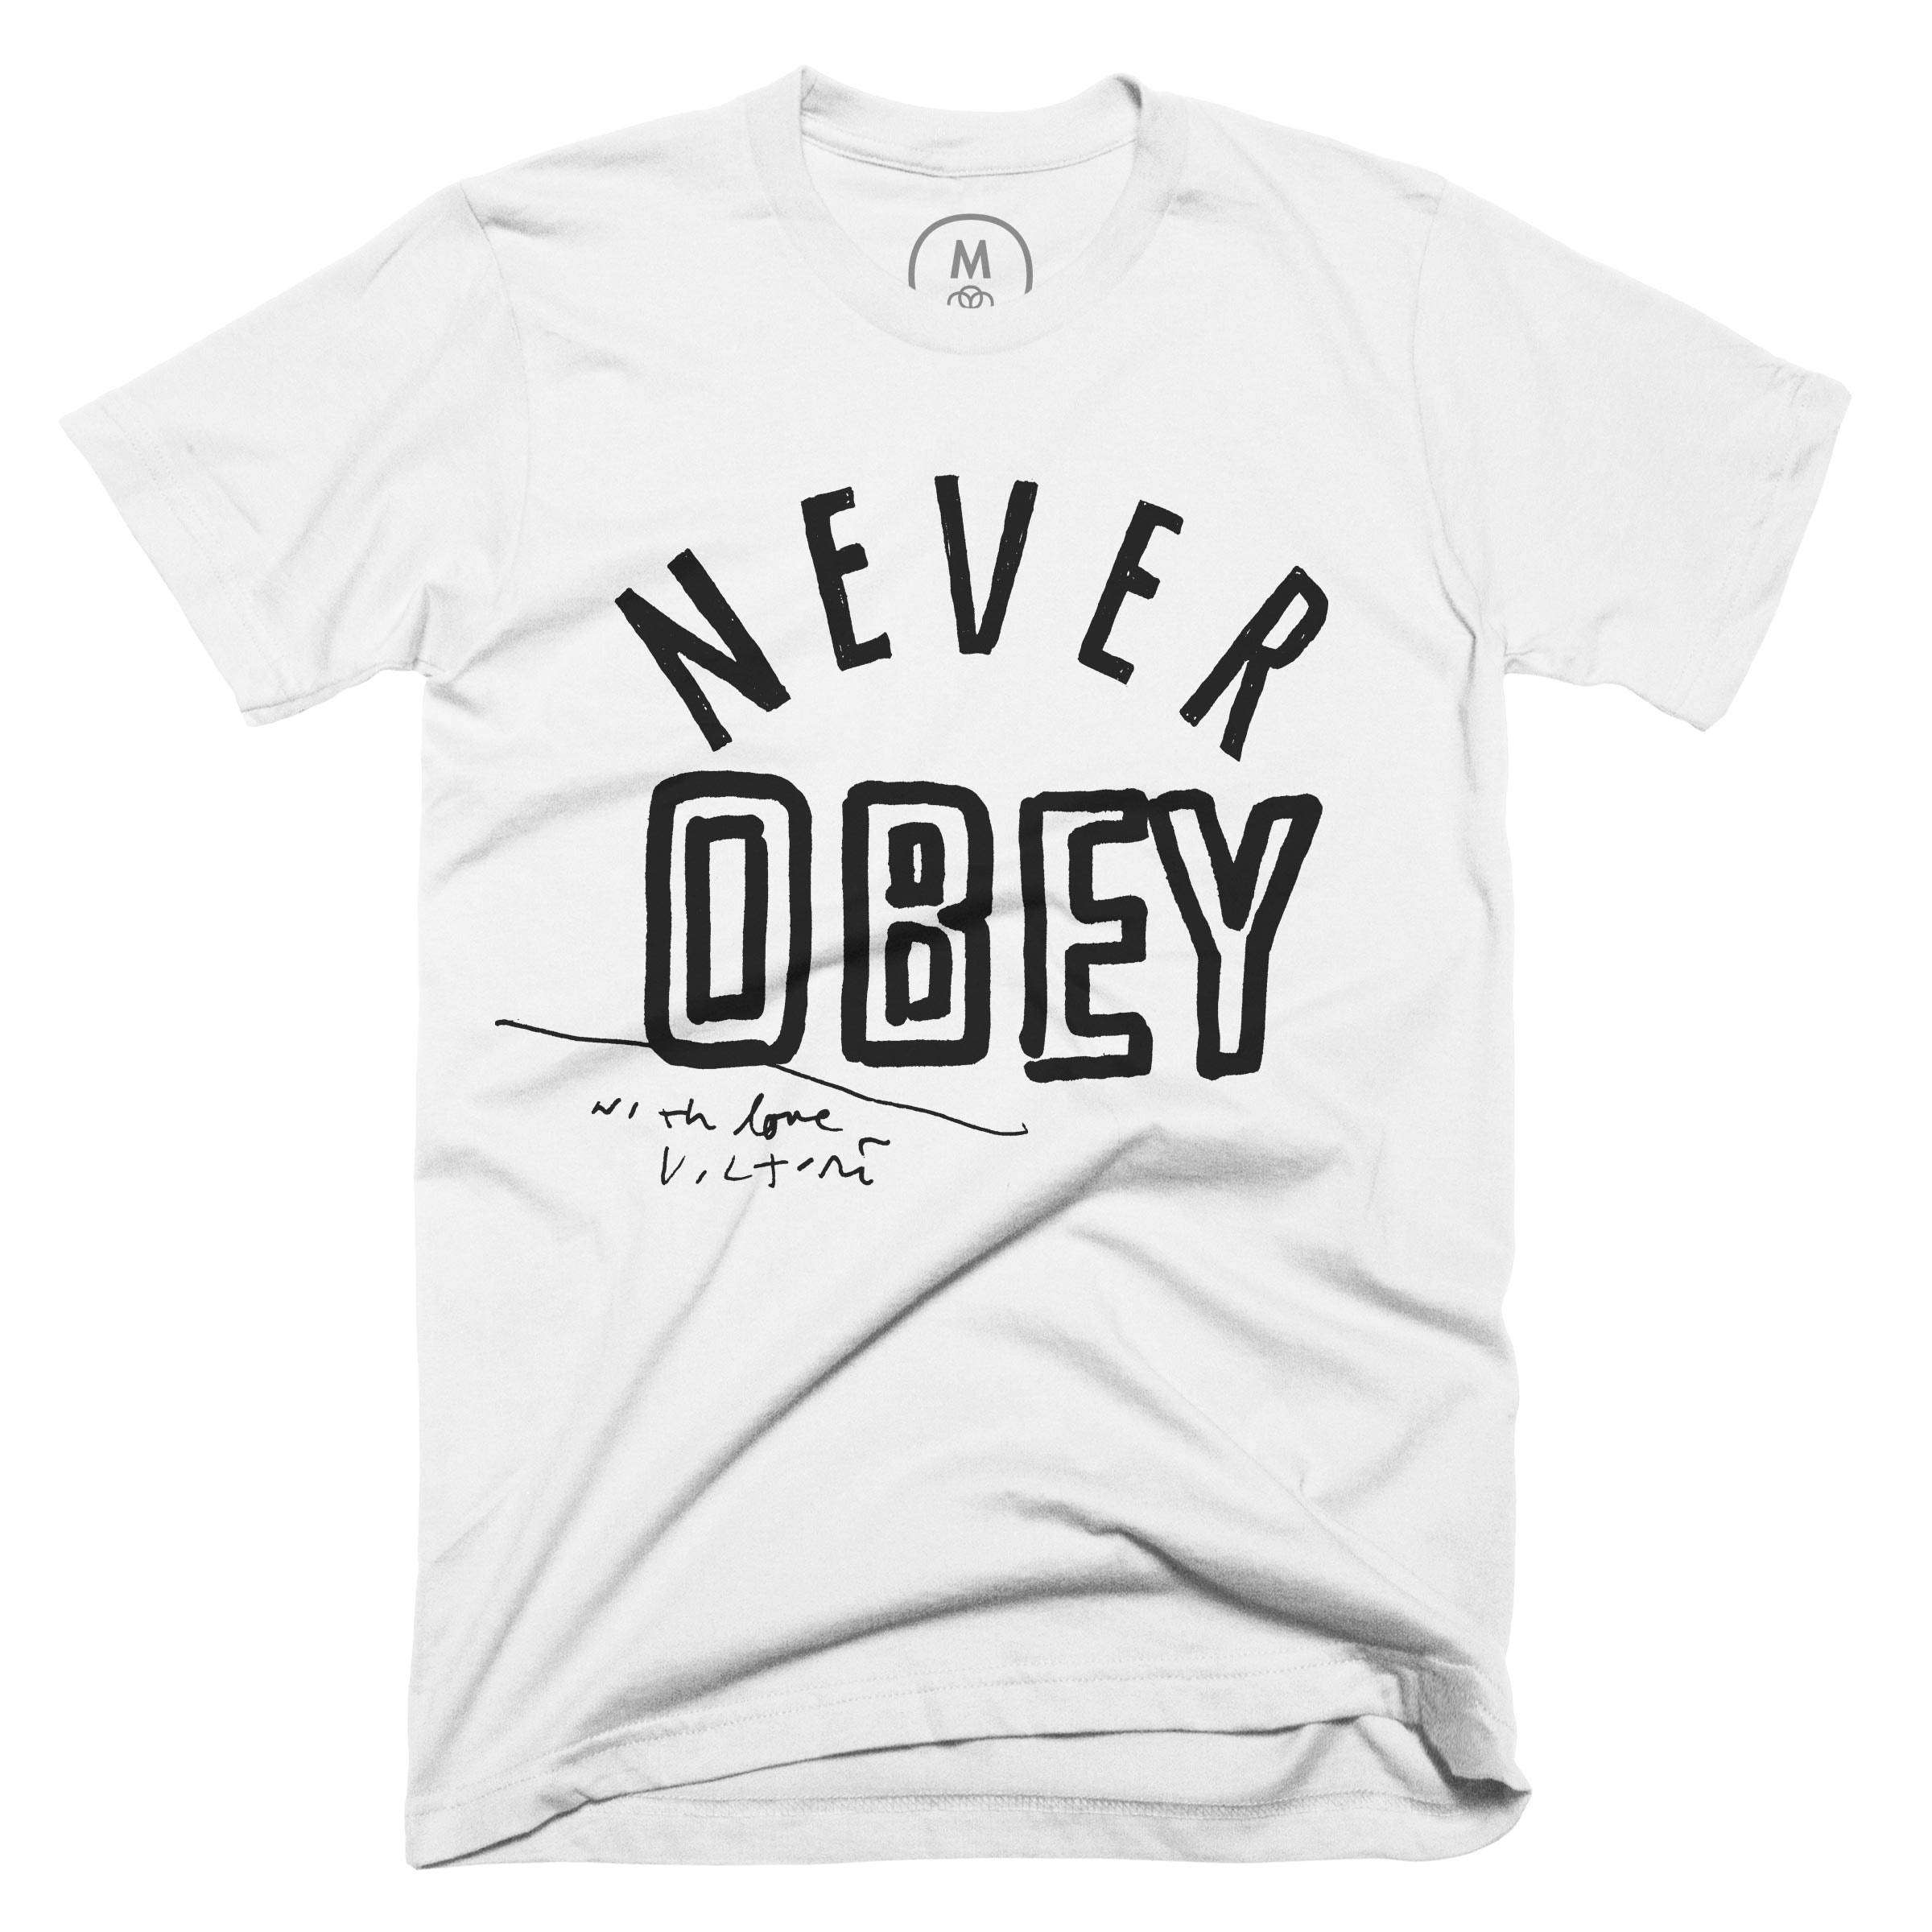 Never Obey